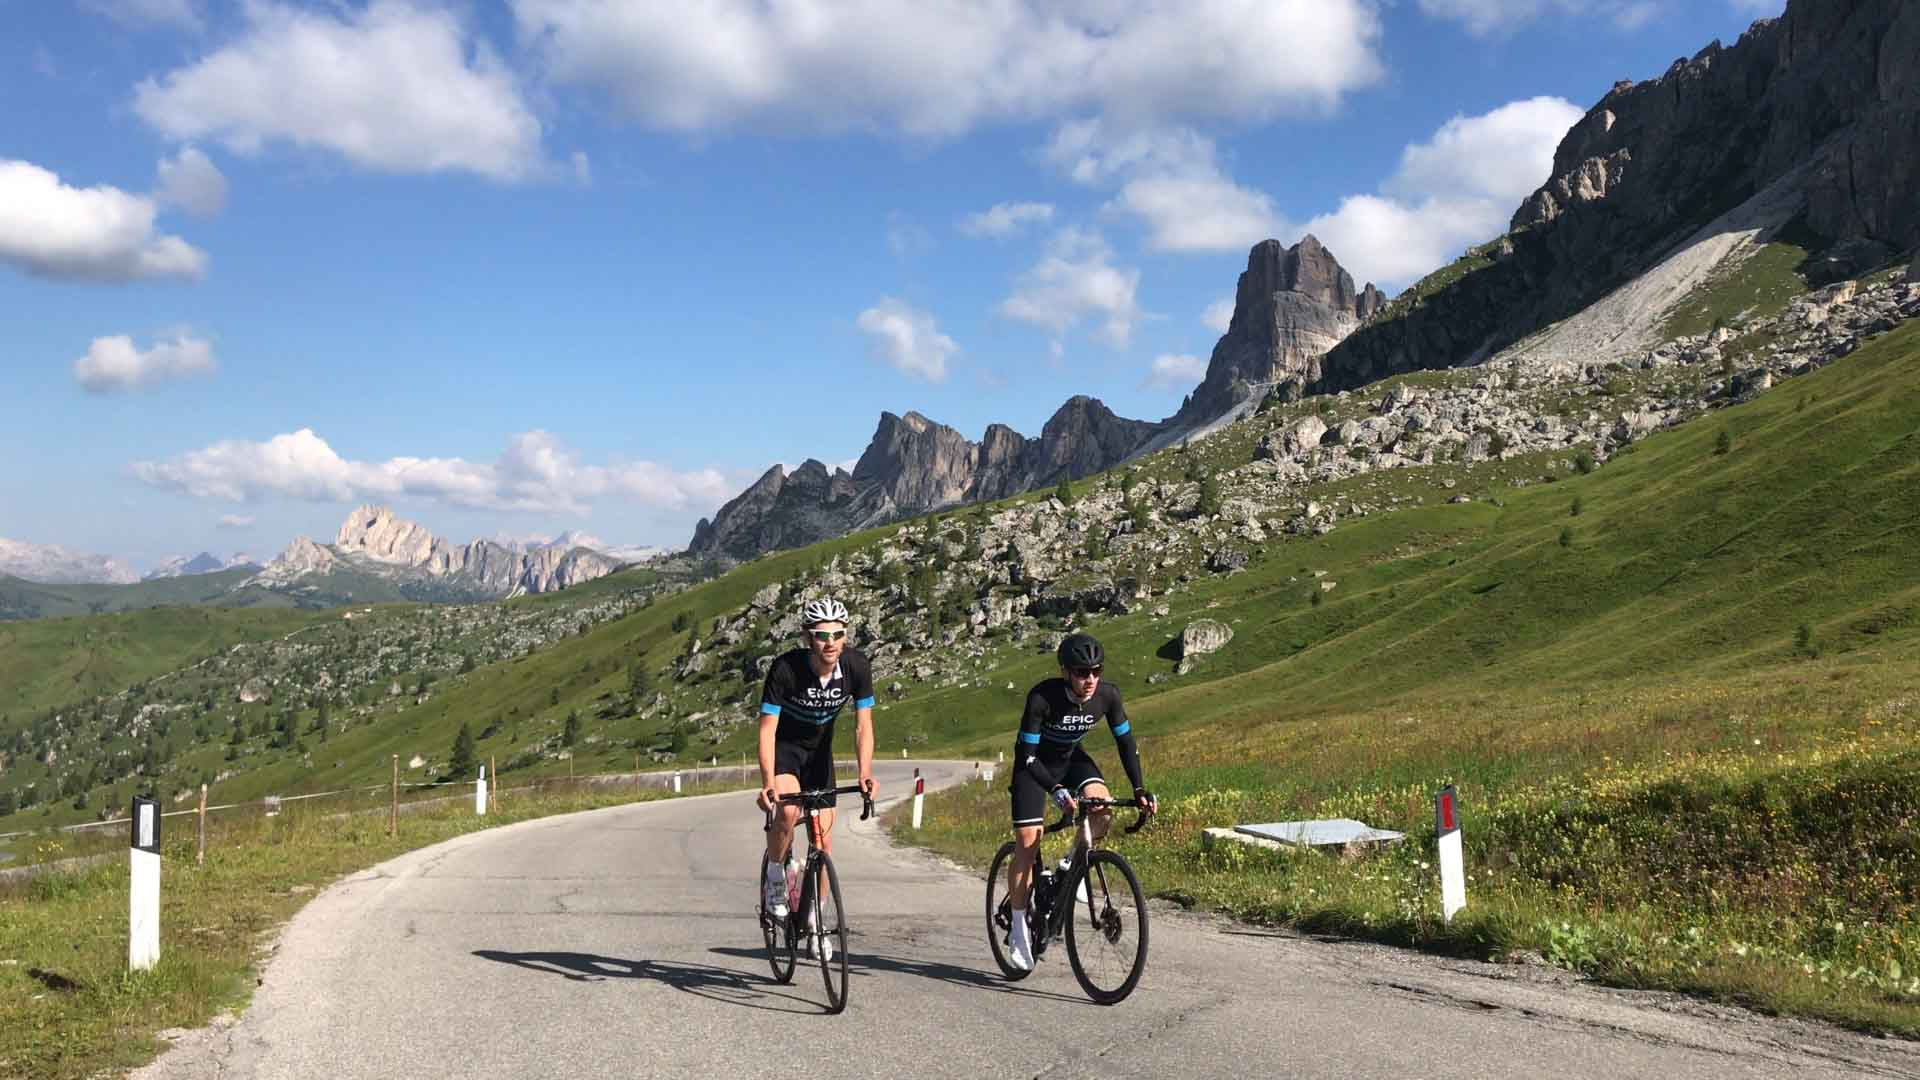 Two cyclists cycling up Passo Giau, Dolomites, Italy